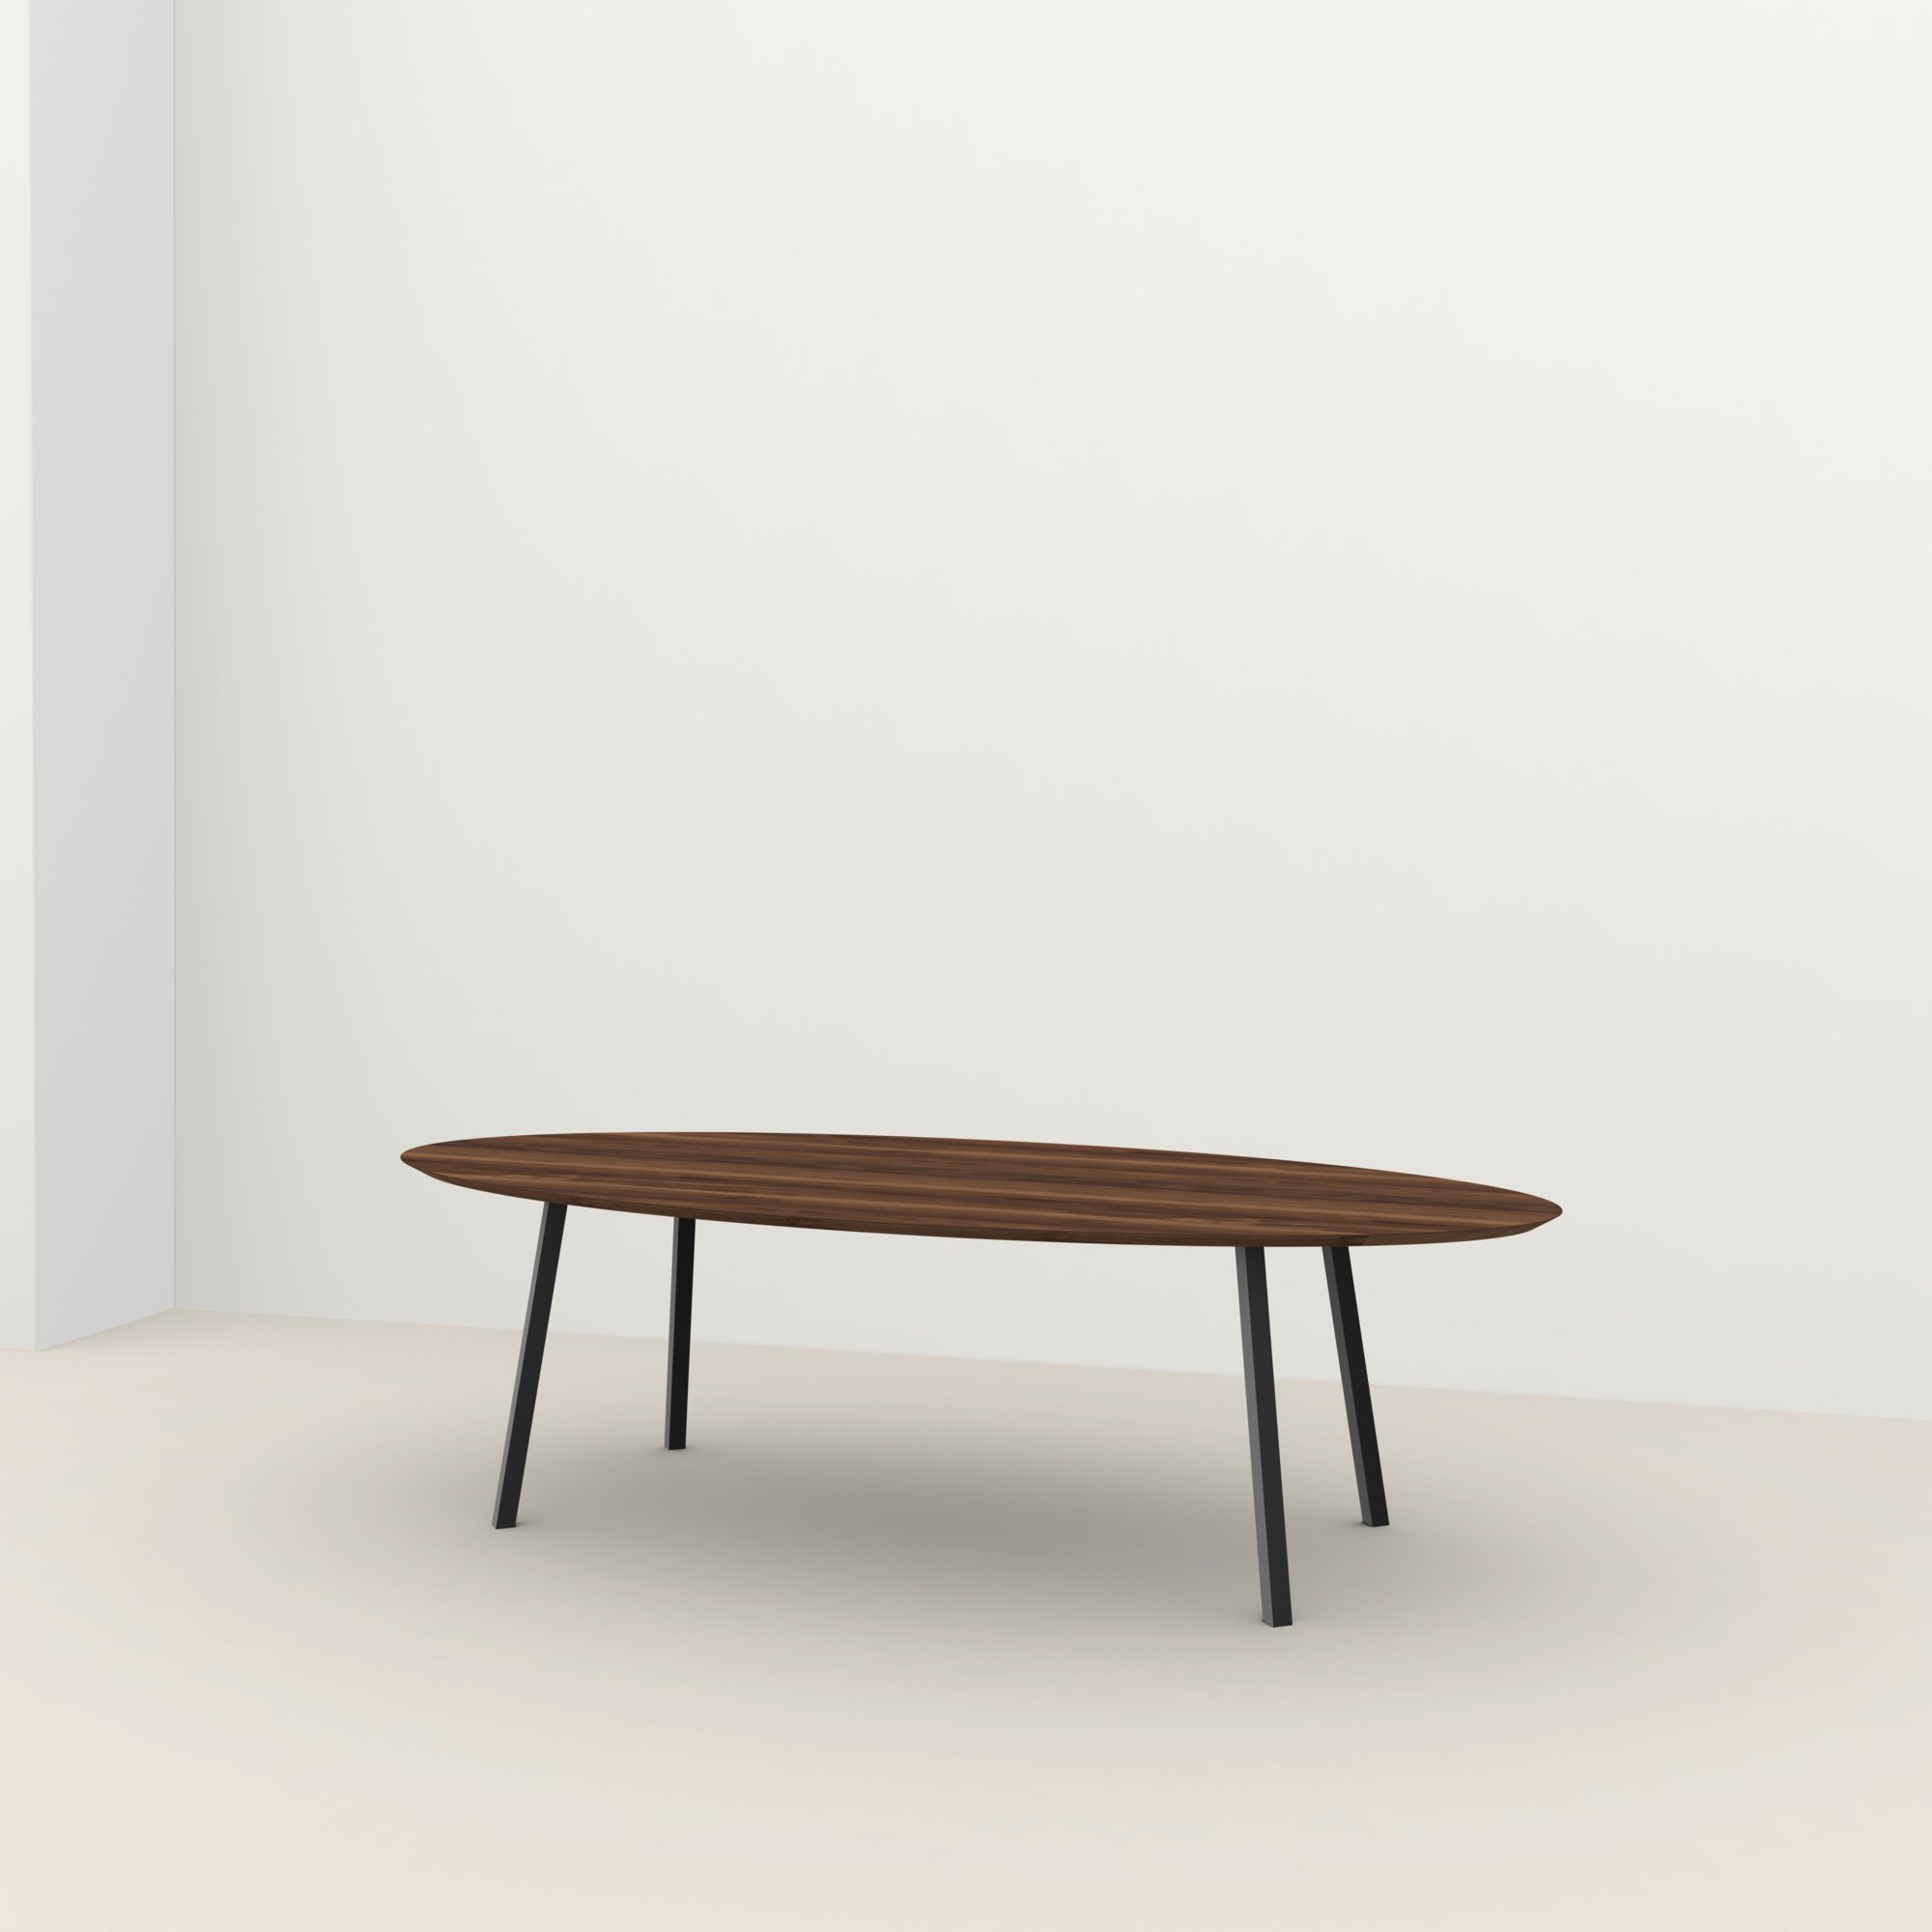 Ovale design tafel op maat | New Classic Steel black powdercoating | Walnut naturel lacquer | Studio HENK |